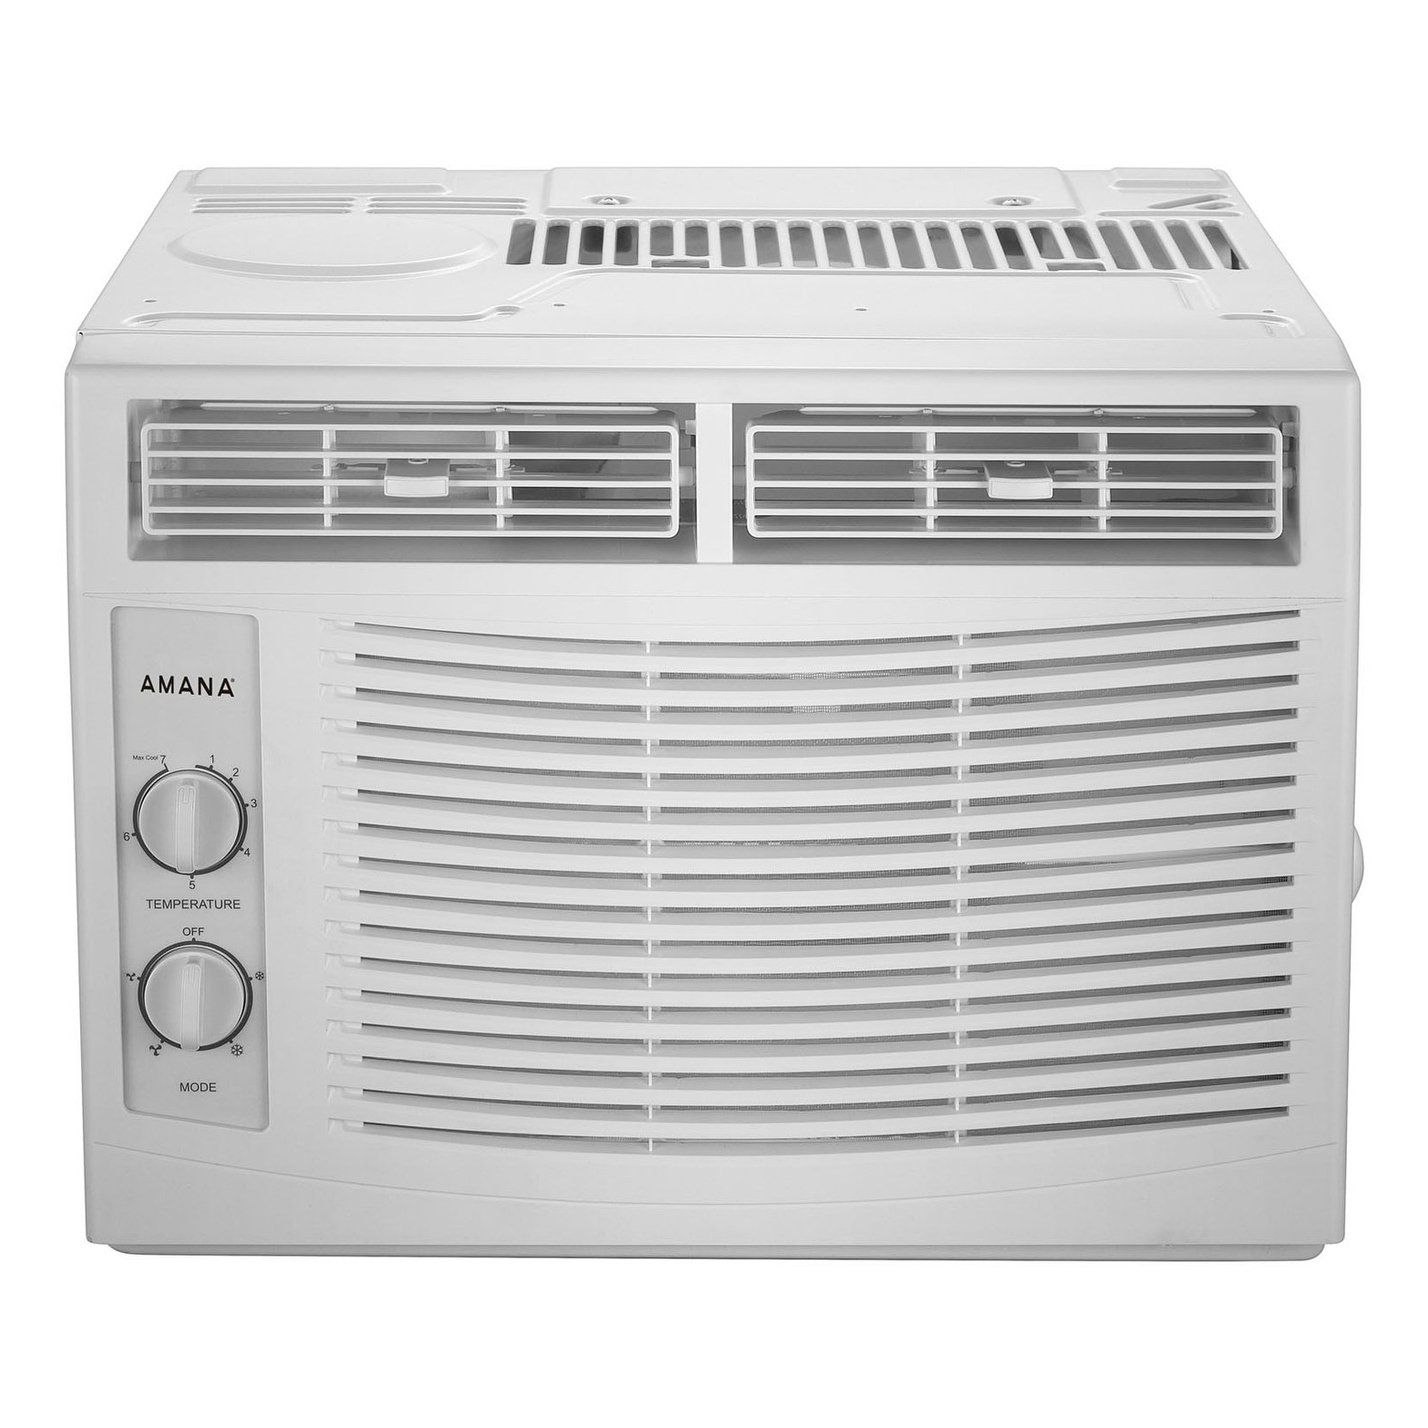 Amana 5 000 Btu Window Mounted Air Conditioner With Mechanical Controls White Products In 2019 Window Air Conditioner Installation Window Air Conditioner Small Window Air Conditioner